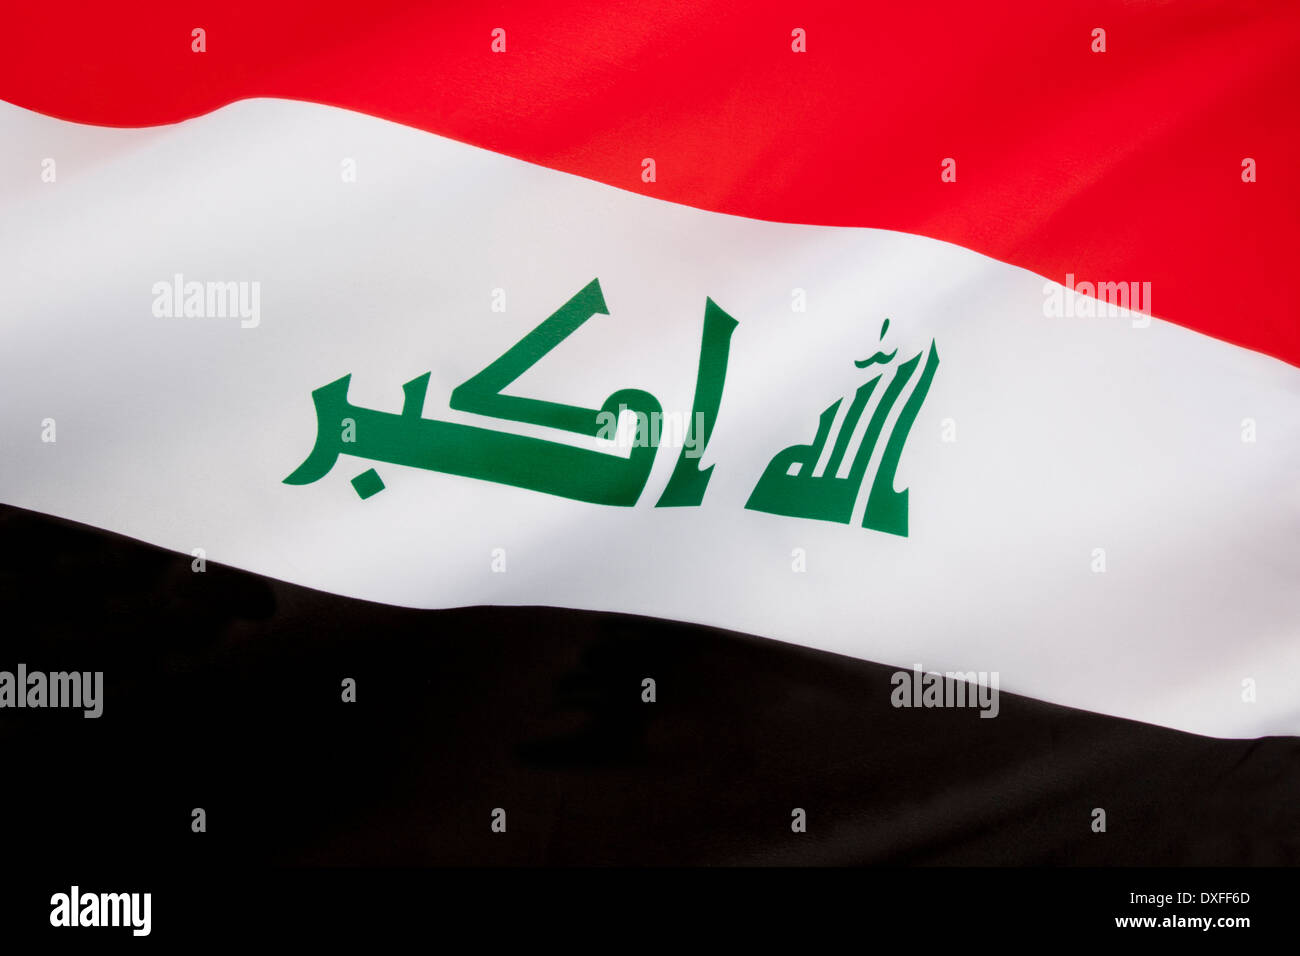 The flag of Iraq - Stock Image